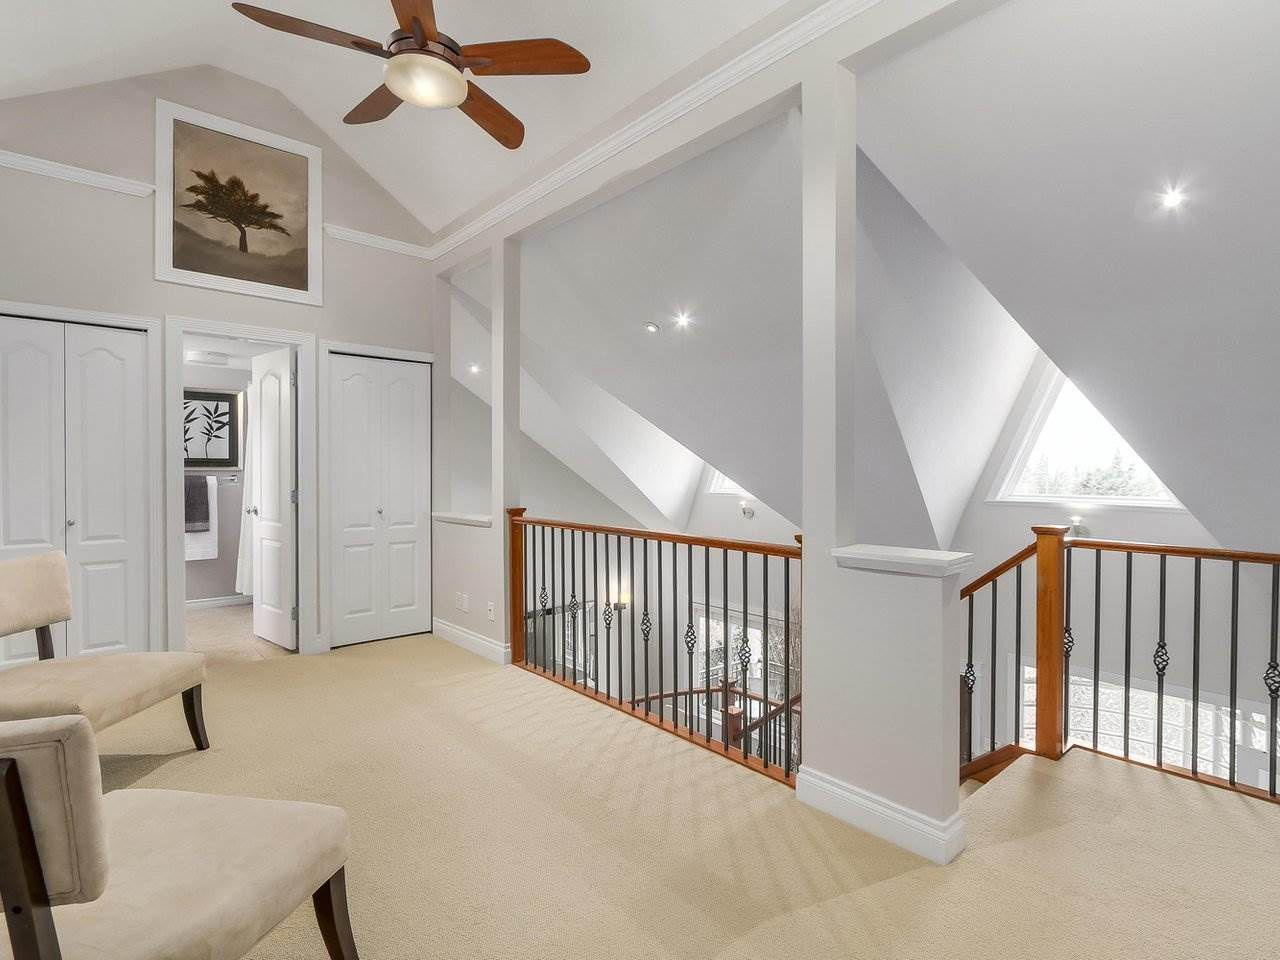 Photo 8: Photos: 658 E 4TH STREET in North Vancouver: Queensbury House for sale : MLS®# R2222993